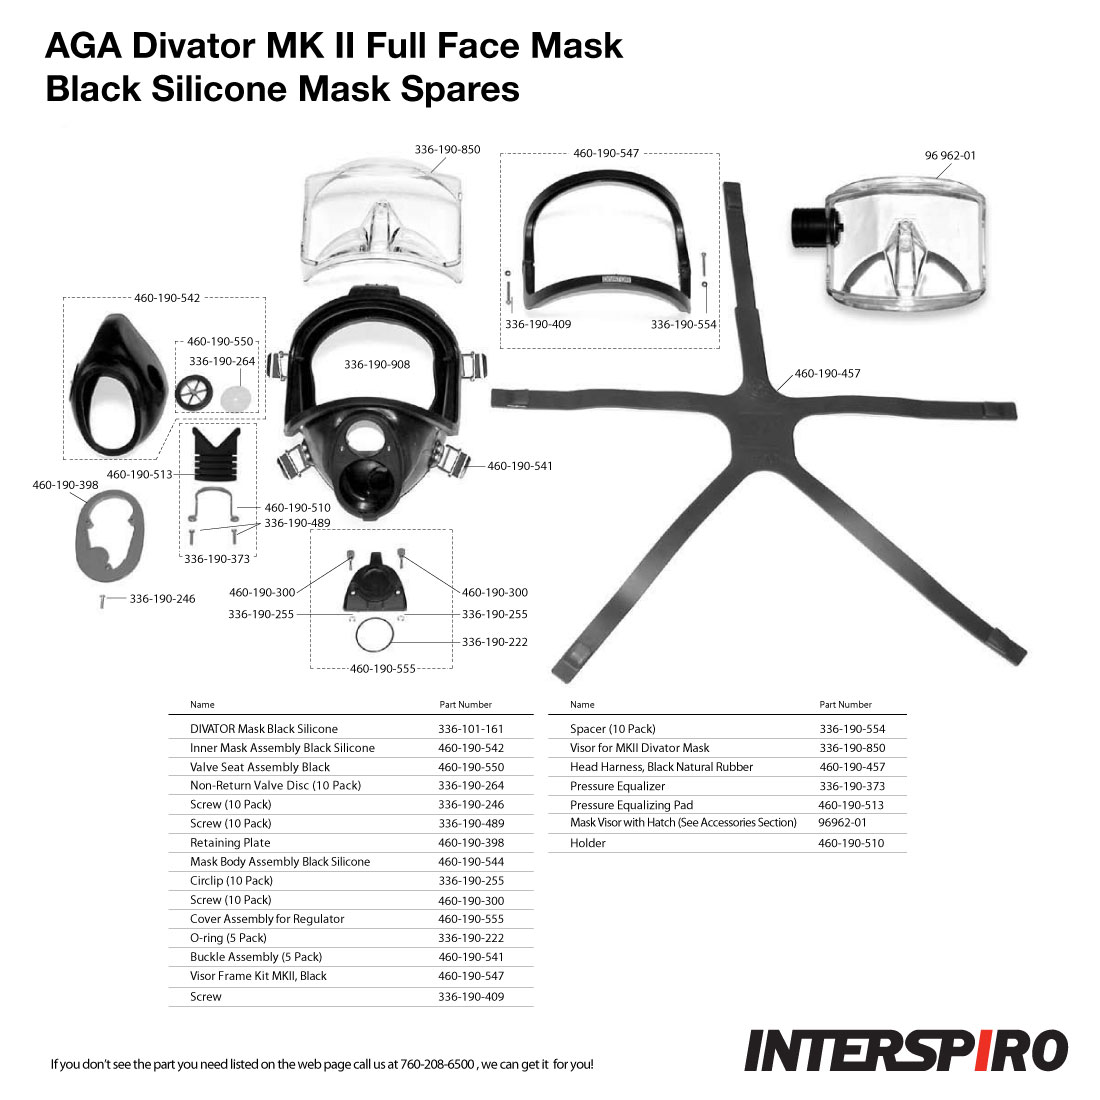 Mask Spares